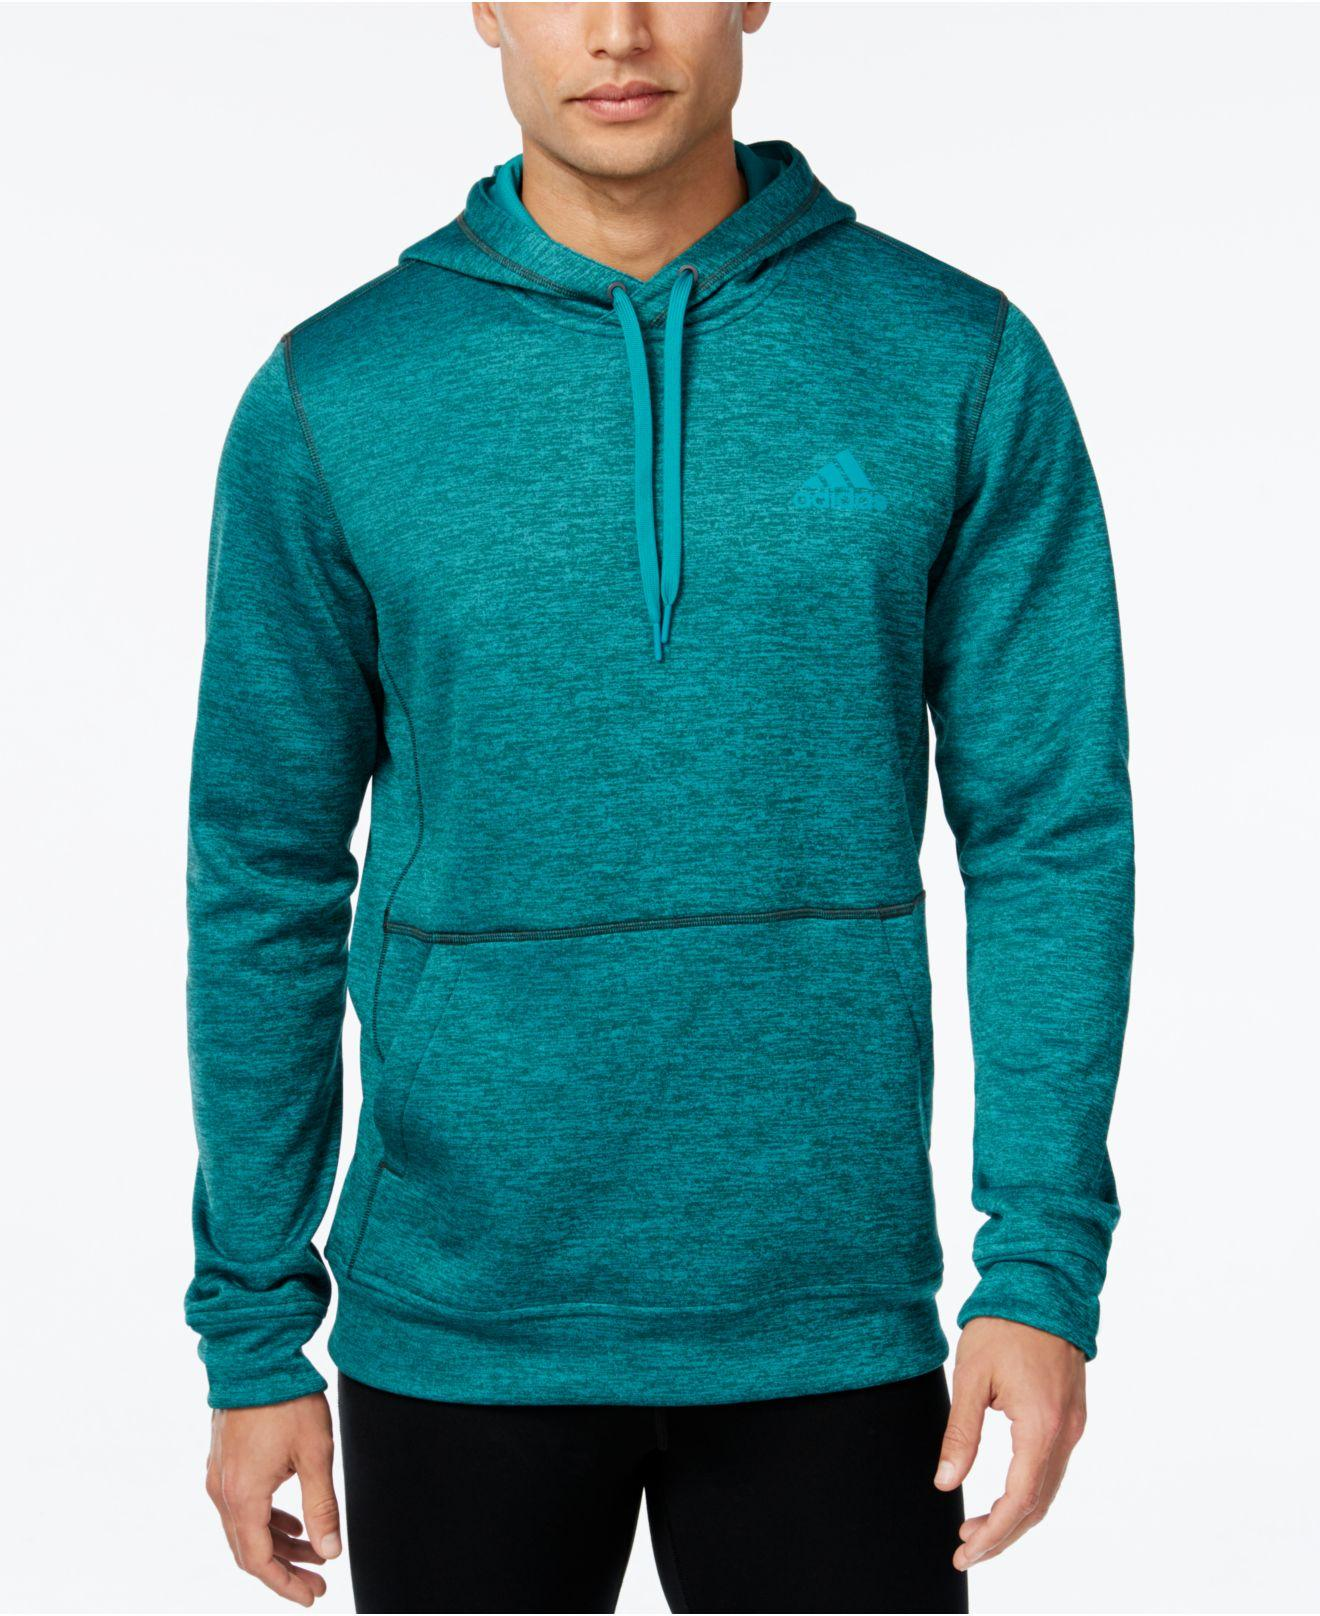 lyst adidas originals men 39 s climawarm pullover hoodie in. Black Bedroom Furniture Sets. Home Design Ideas